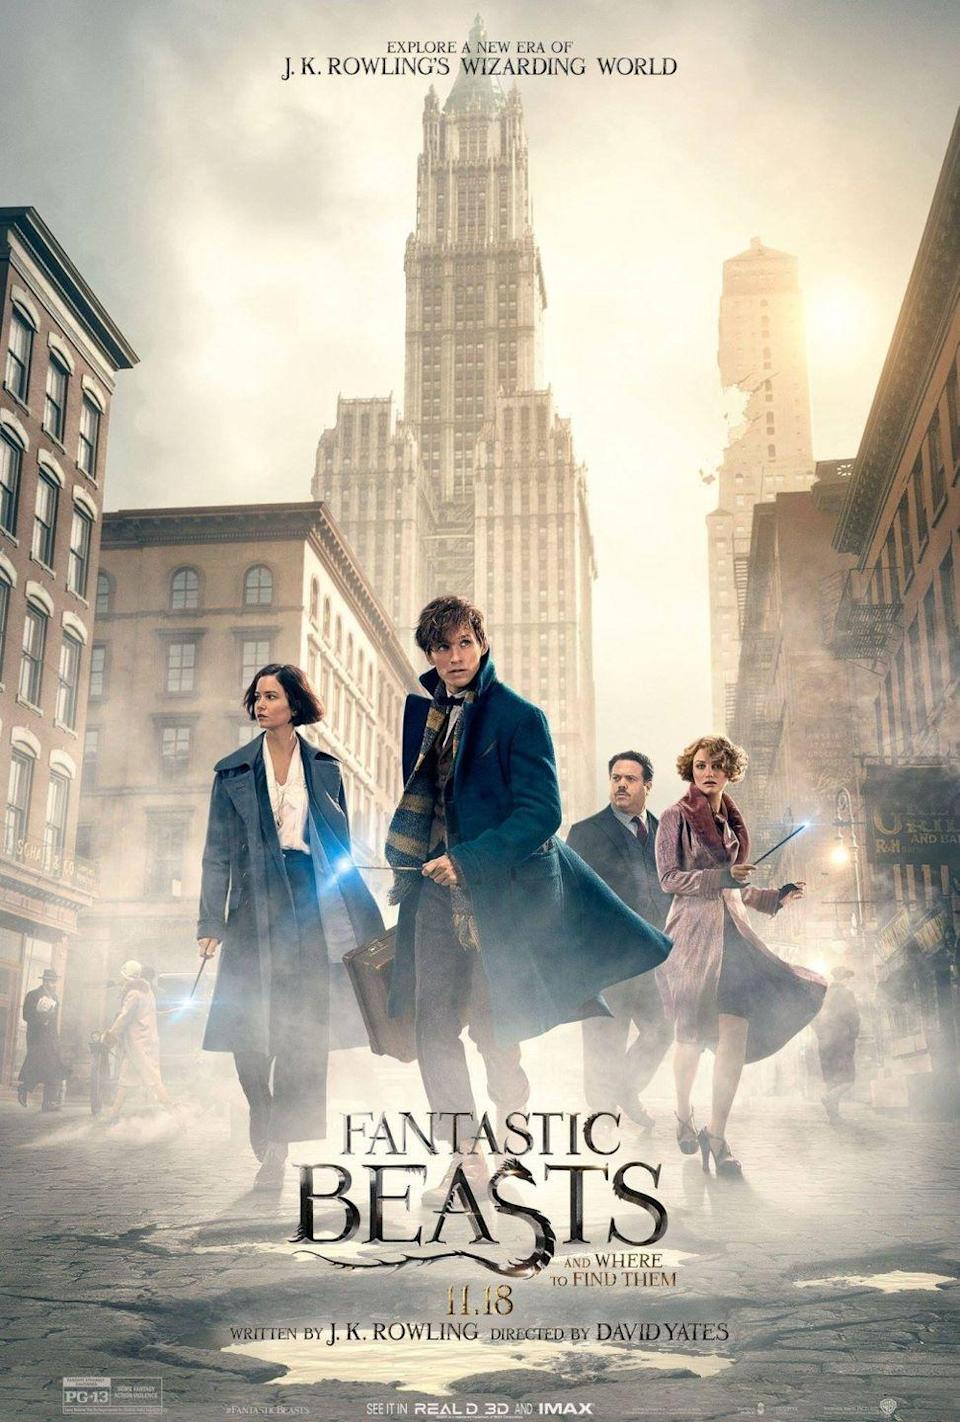 "<p><em>Fantastic Beasts</em> takes us to a new era, decades before Harry was born. Set in 1920s New York, we meet Newt Scamander, a wizard zoologist who carries around a case filled with the most fantastical beasts in the Wizarding World. In a lot of ways, the film follows the same structure as <em>Harry Potter</em>: evil wizard trying to take over the world, something strange wreaking havoc on the city, and our hero Newt must stop it all with the help of his friends ... but this time, his friends aren't just humans.</p><p><a class=""link rapid-noclick-resp"" href=""https://www.amazon.com/gp/video/detail/B01MRH9YGH/ref=atv_dp_b07_det_c_UTPsmN_1_1?tag=syn-yahoo-20&ascsubtag=%5Bartid%7C10055.g.33625559%5Bsrc%7Cyahoo-us"" rel=""nofollow noopener"" target=""_blank"" data-ylk=""slk:WATCH NOW"">WATCH NOW</a></p>"